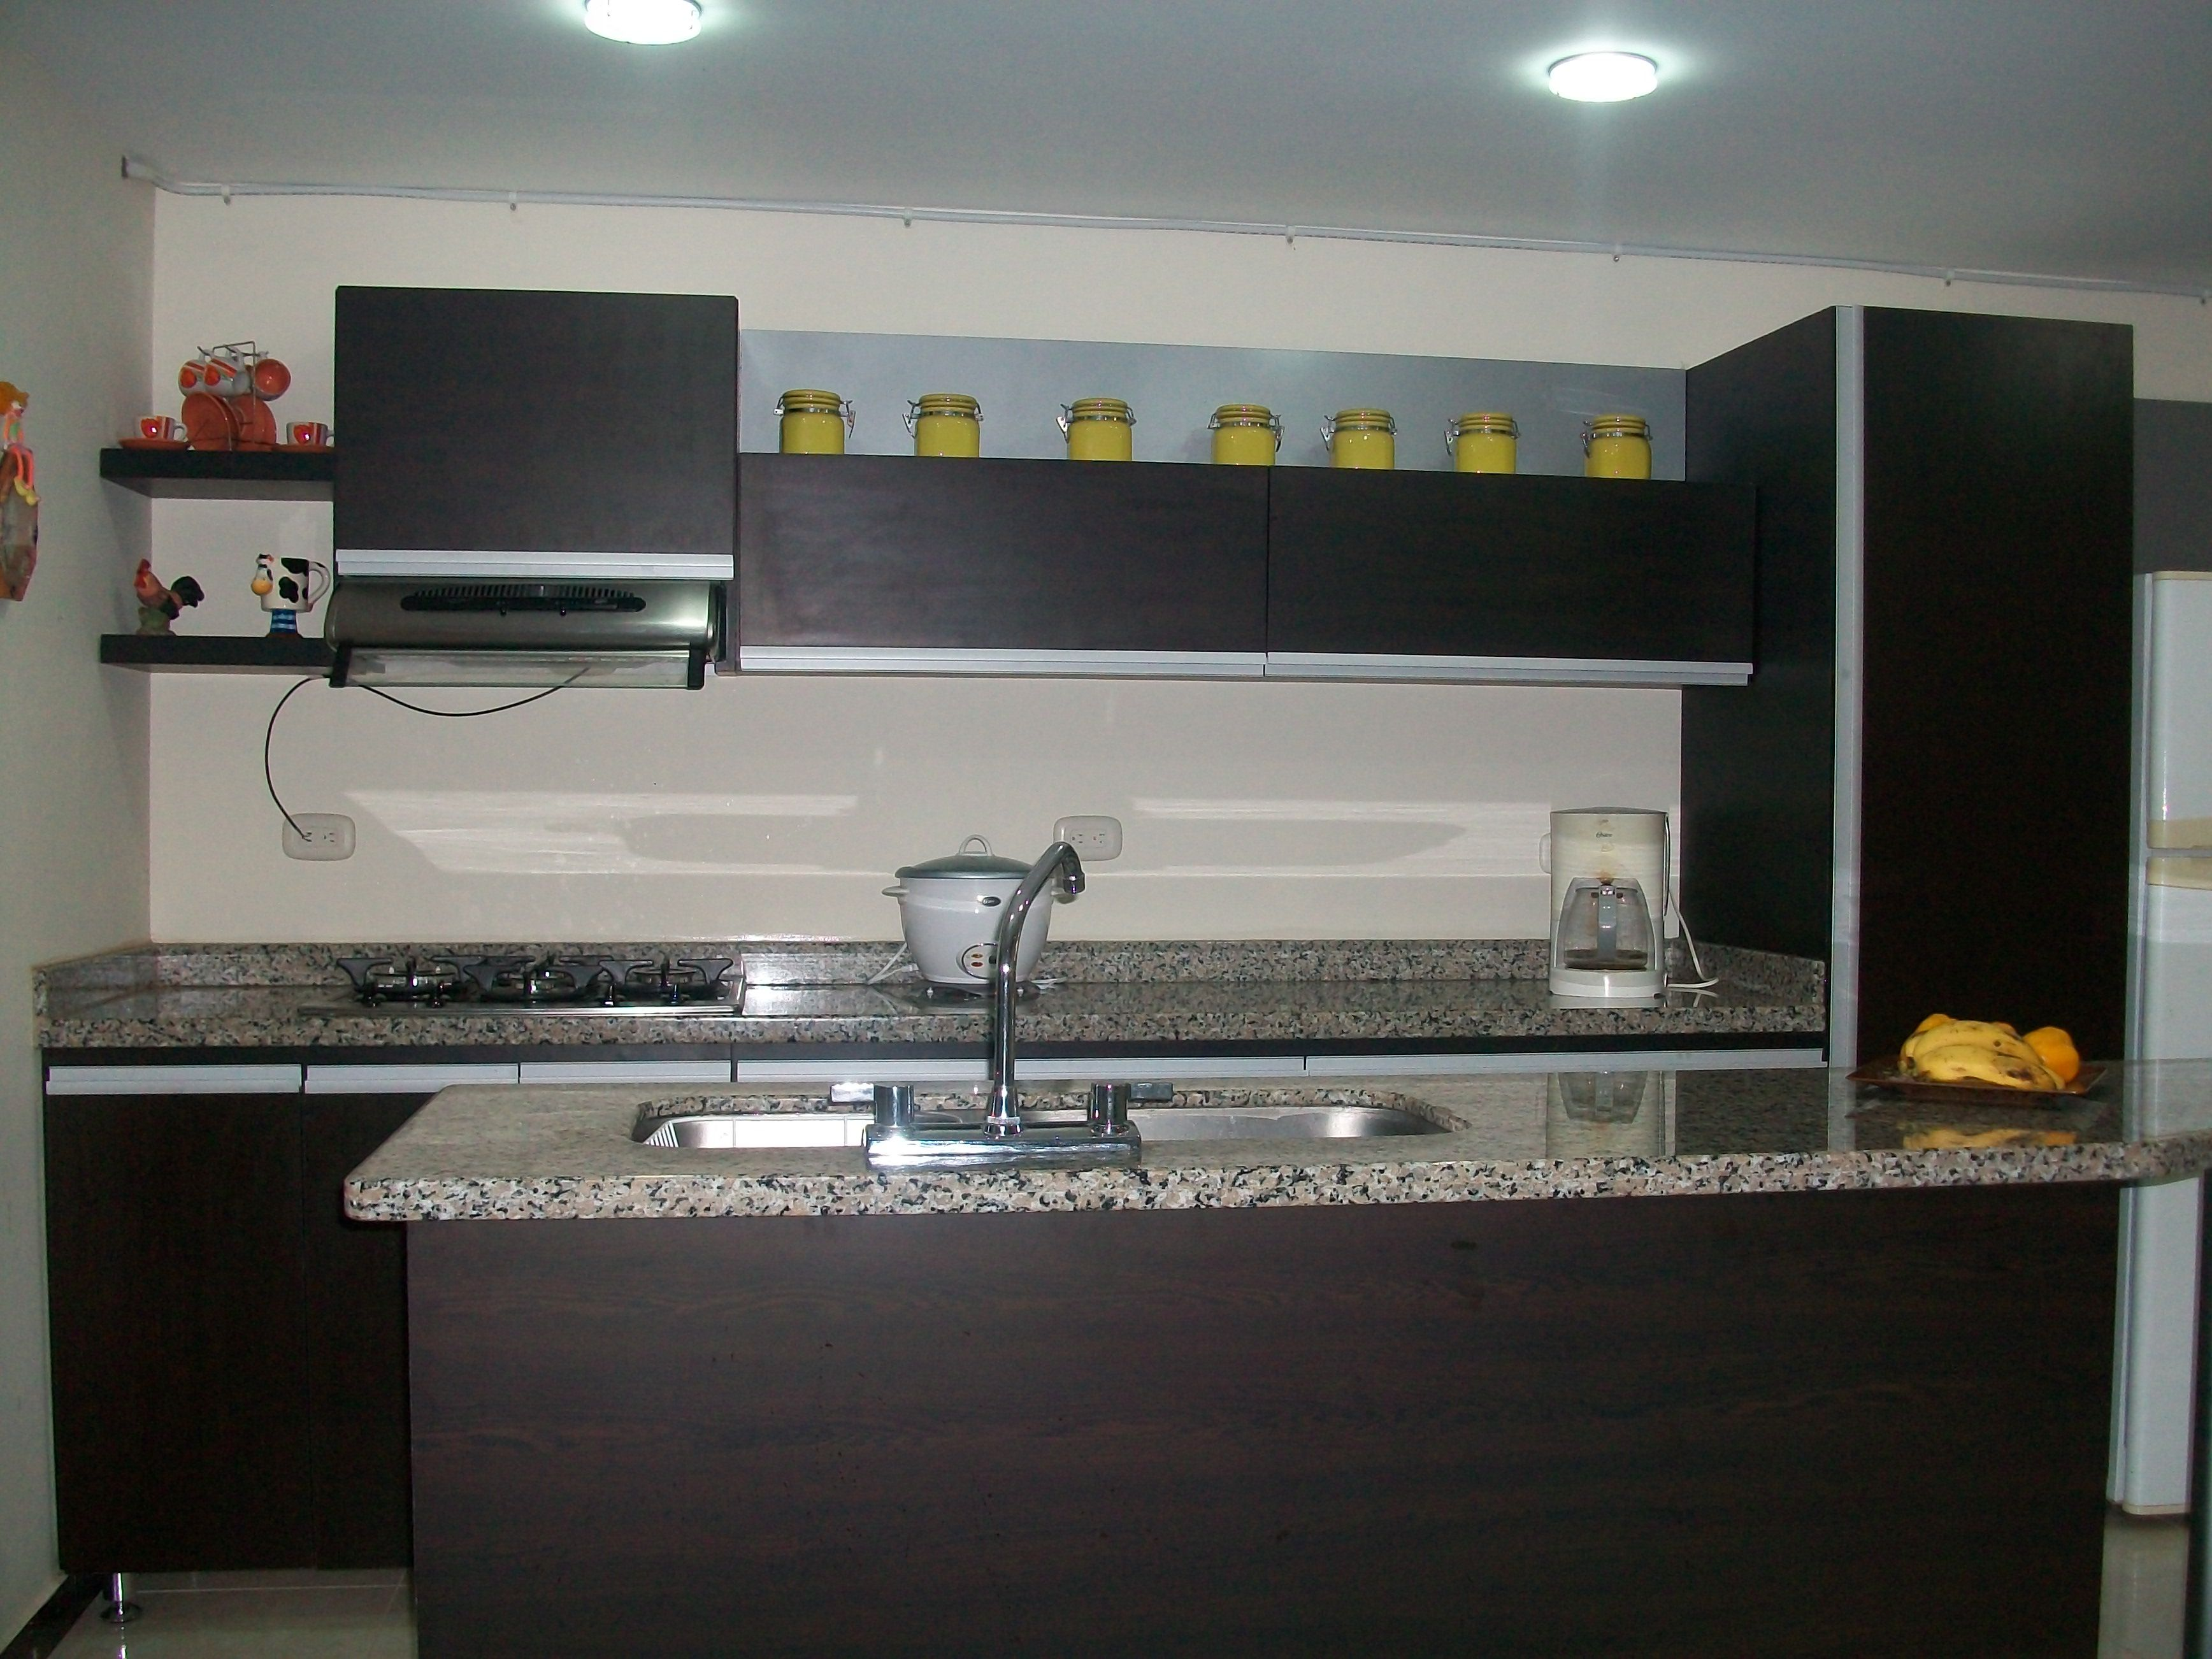 C g arte y decoraci n cocina con meson en granito natural for Enchapes cocinas modernas